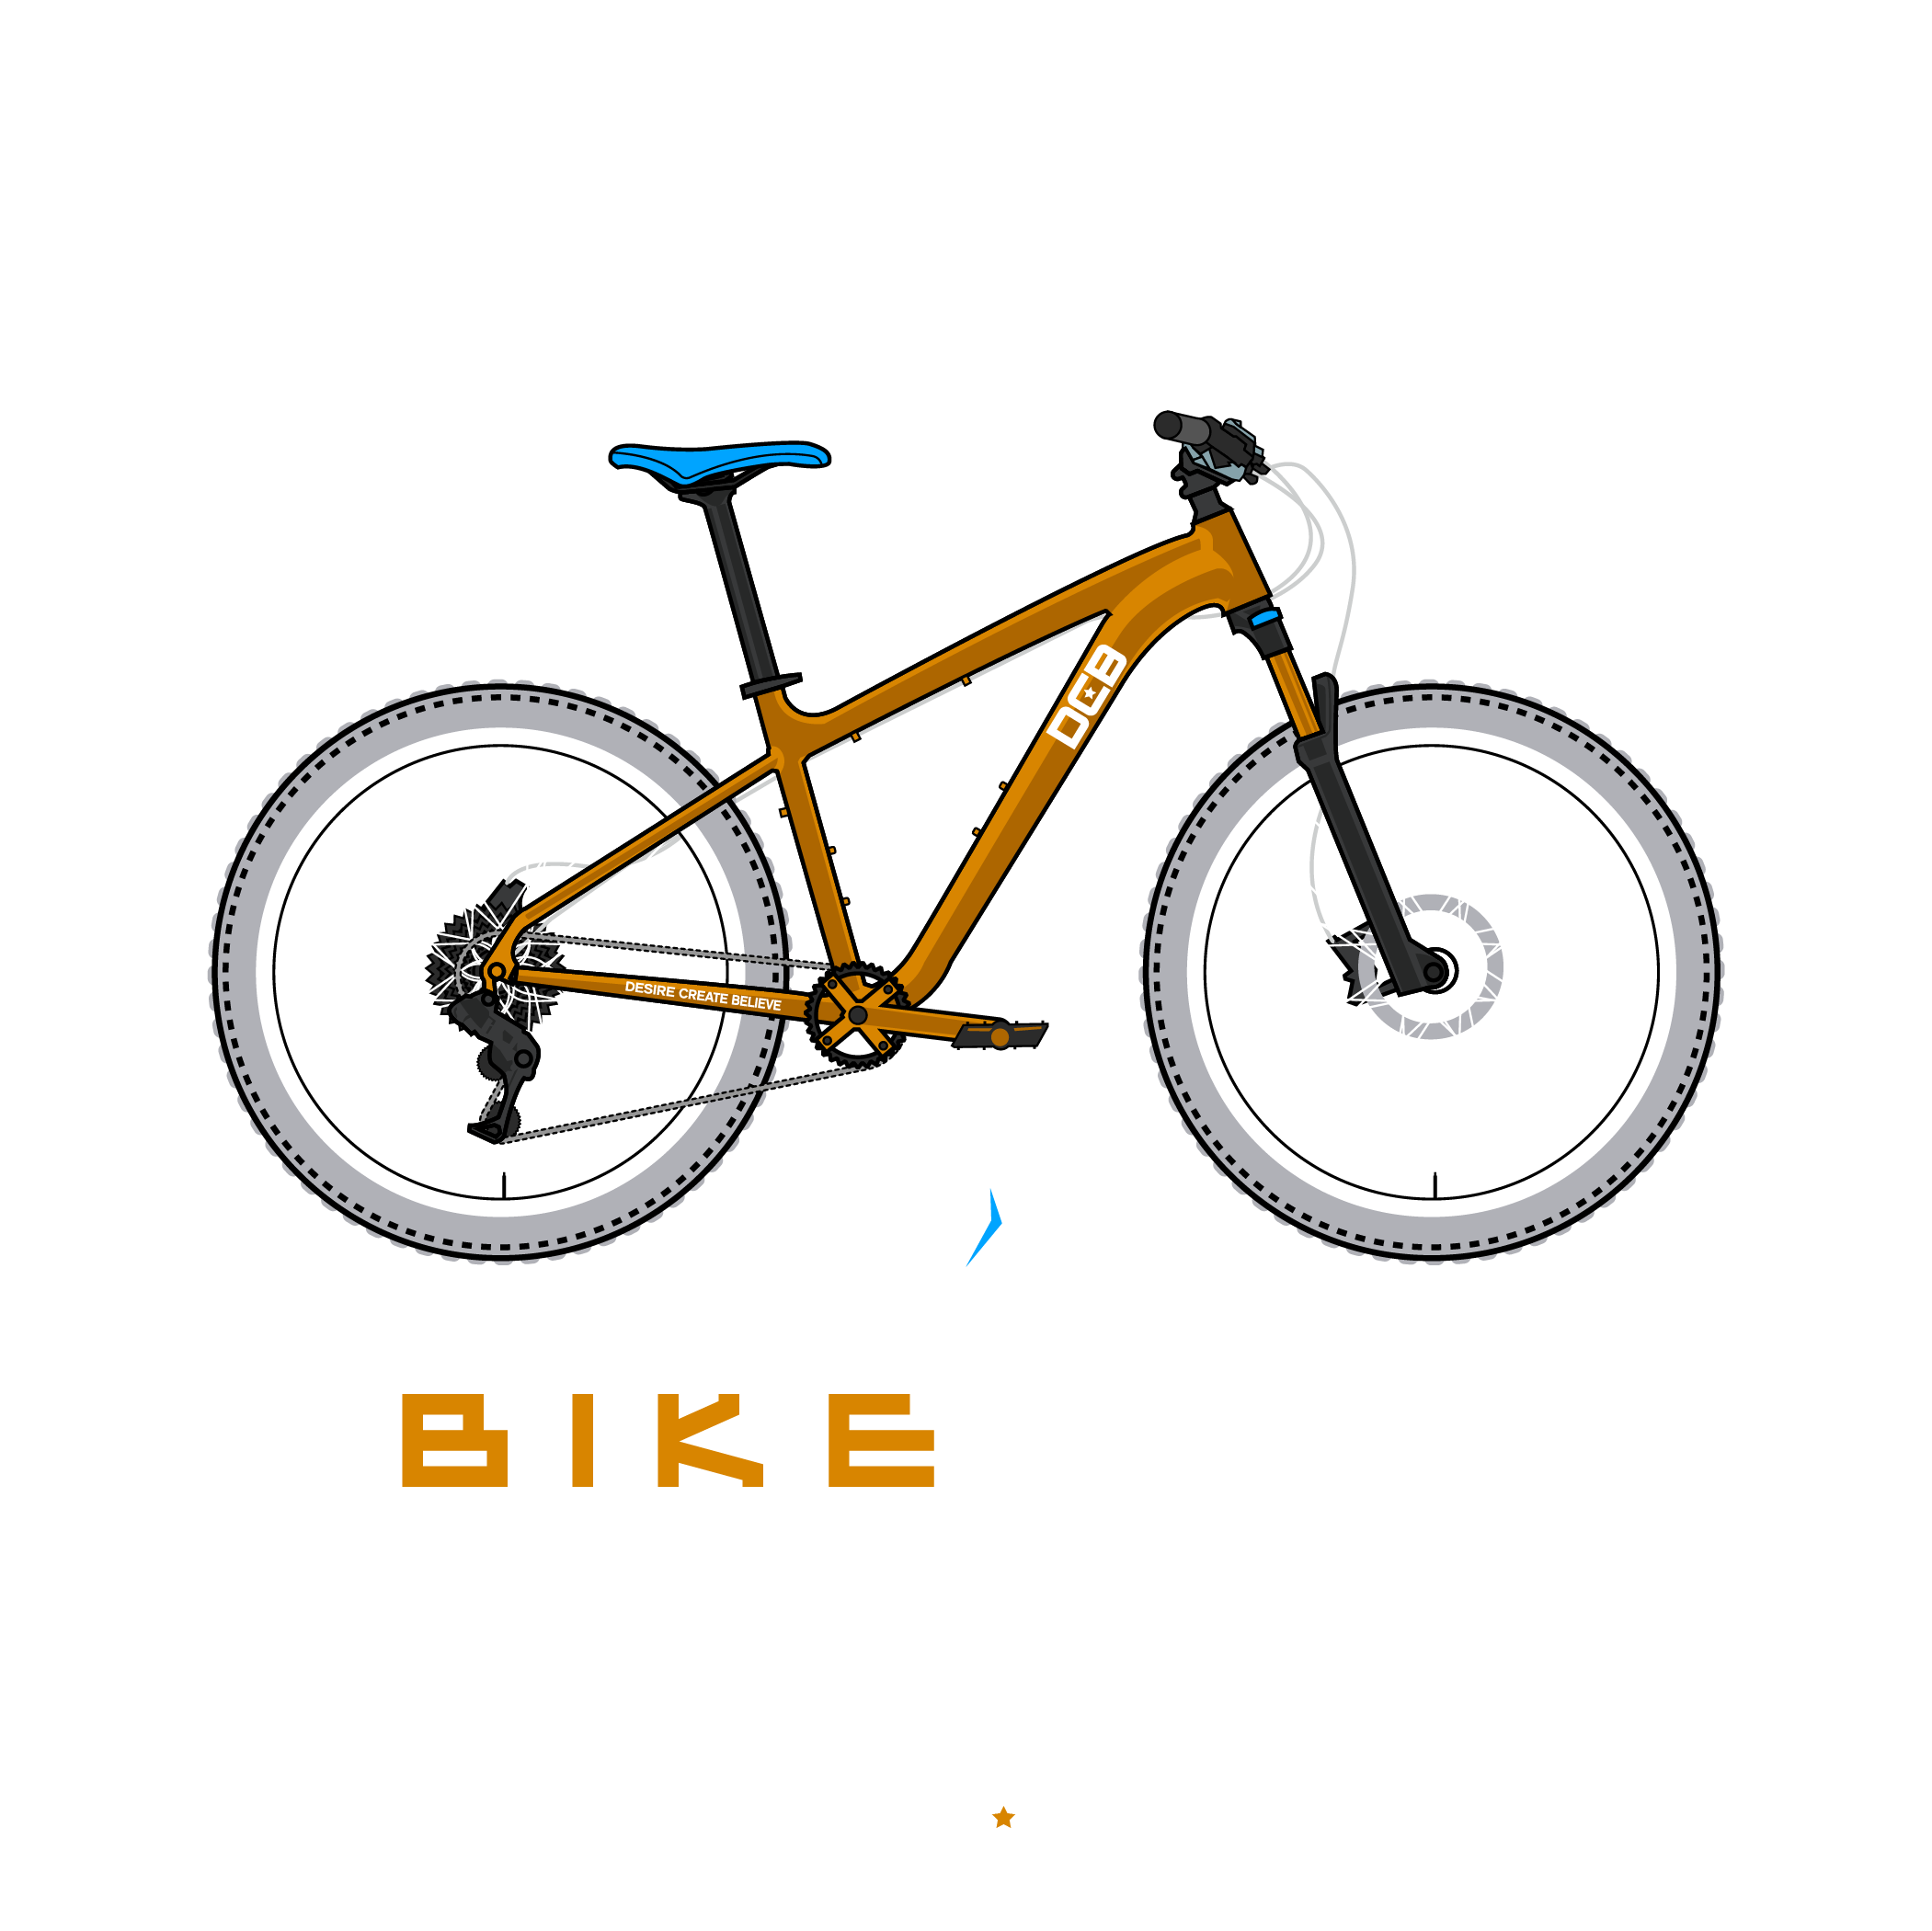 Bike Life Hardtail Suburb.png